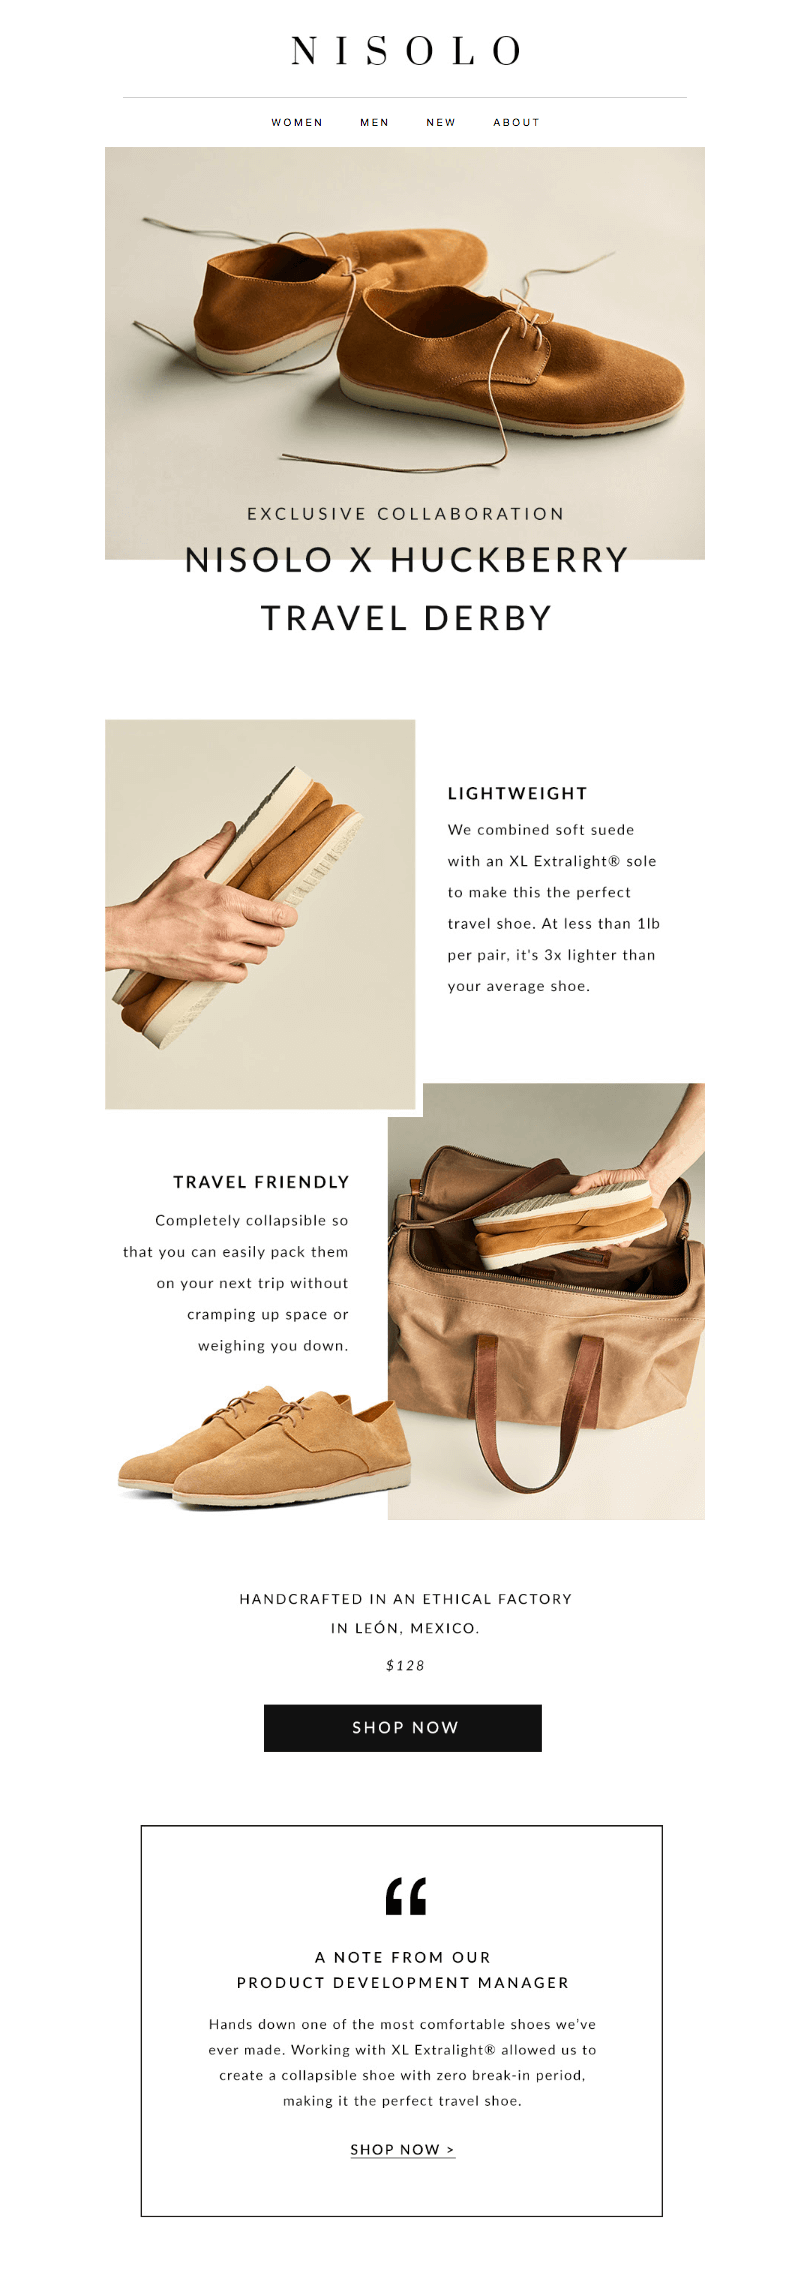 Nisolo Huckberry brand collaboration emails